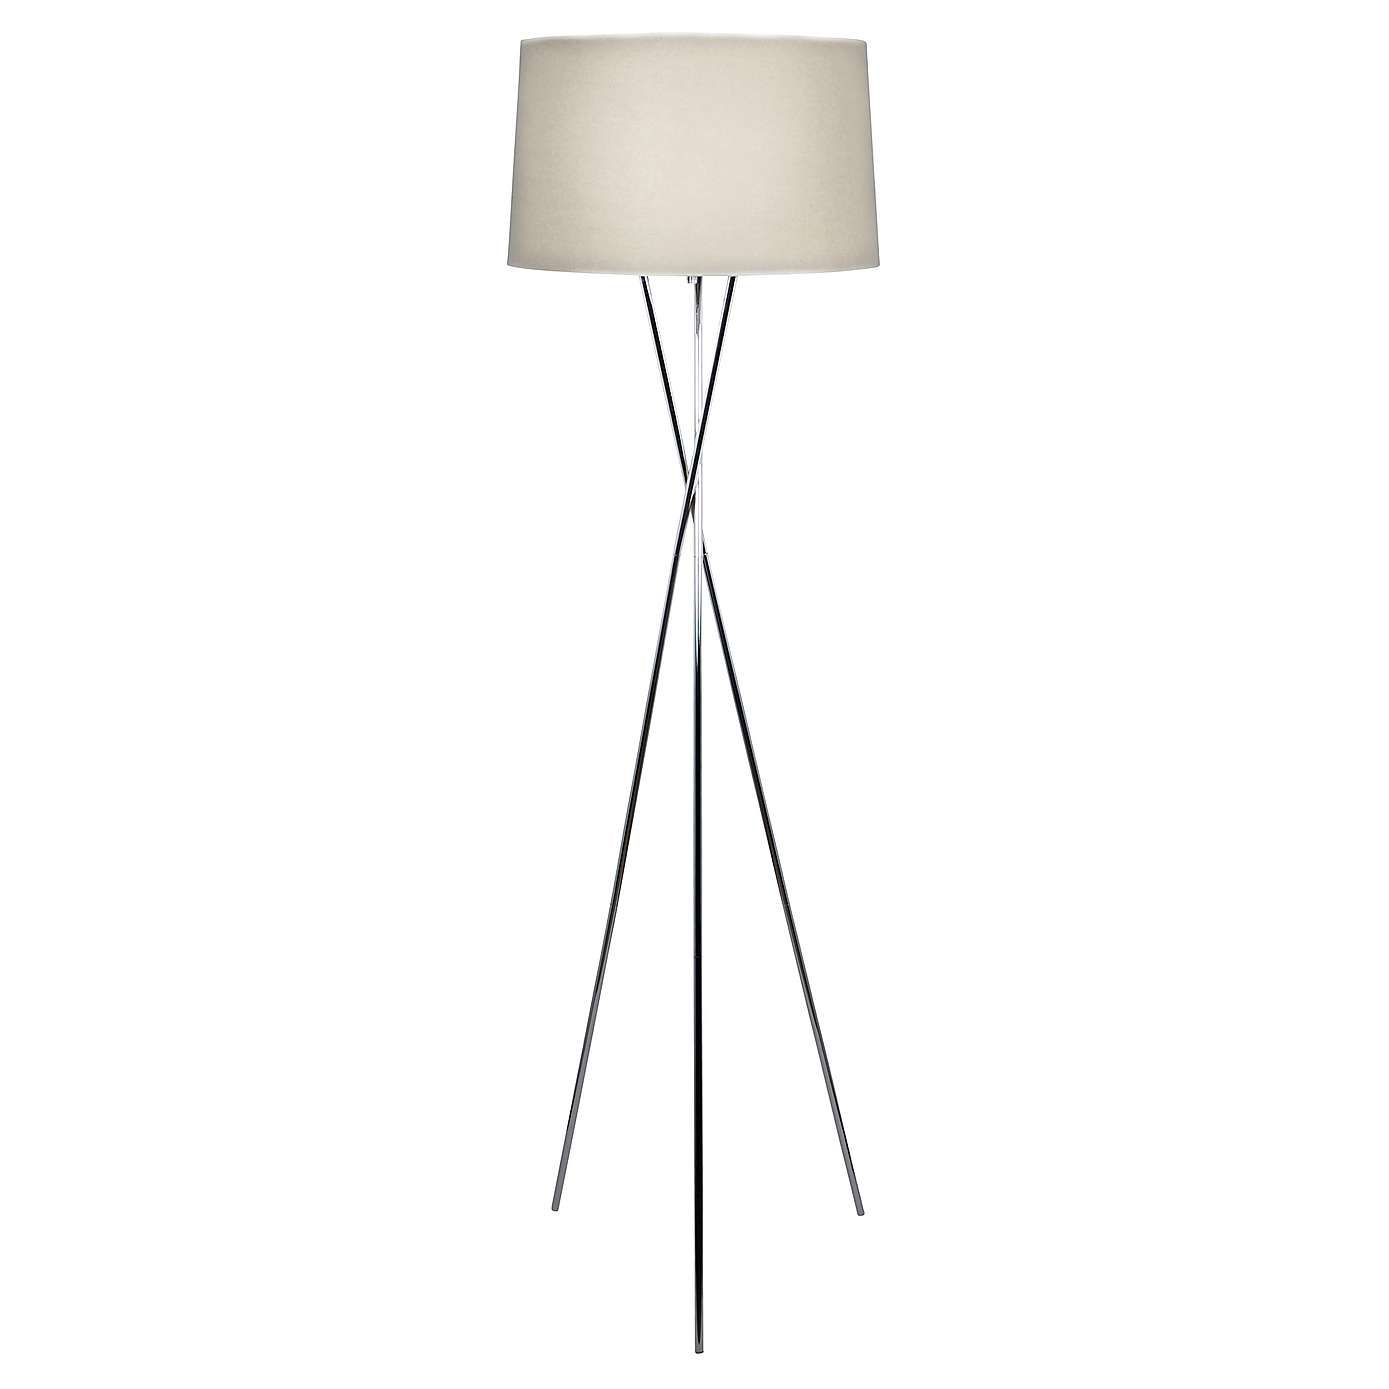 Matching floor and table lamps - Floor Lamp For Livingroom Reduced In Dunelm Mill And There Is A Matching Table Lamp For Only